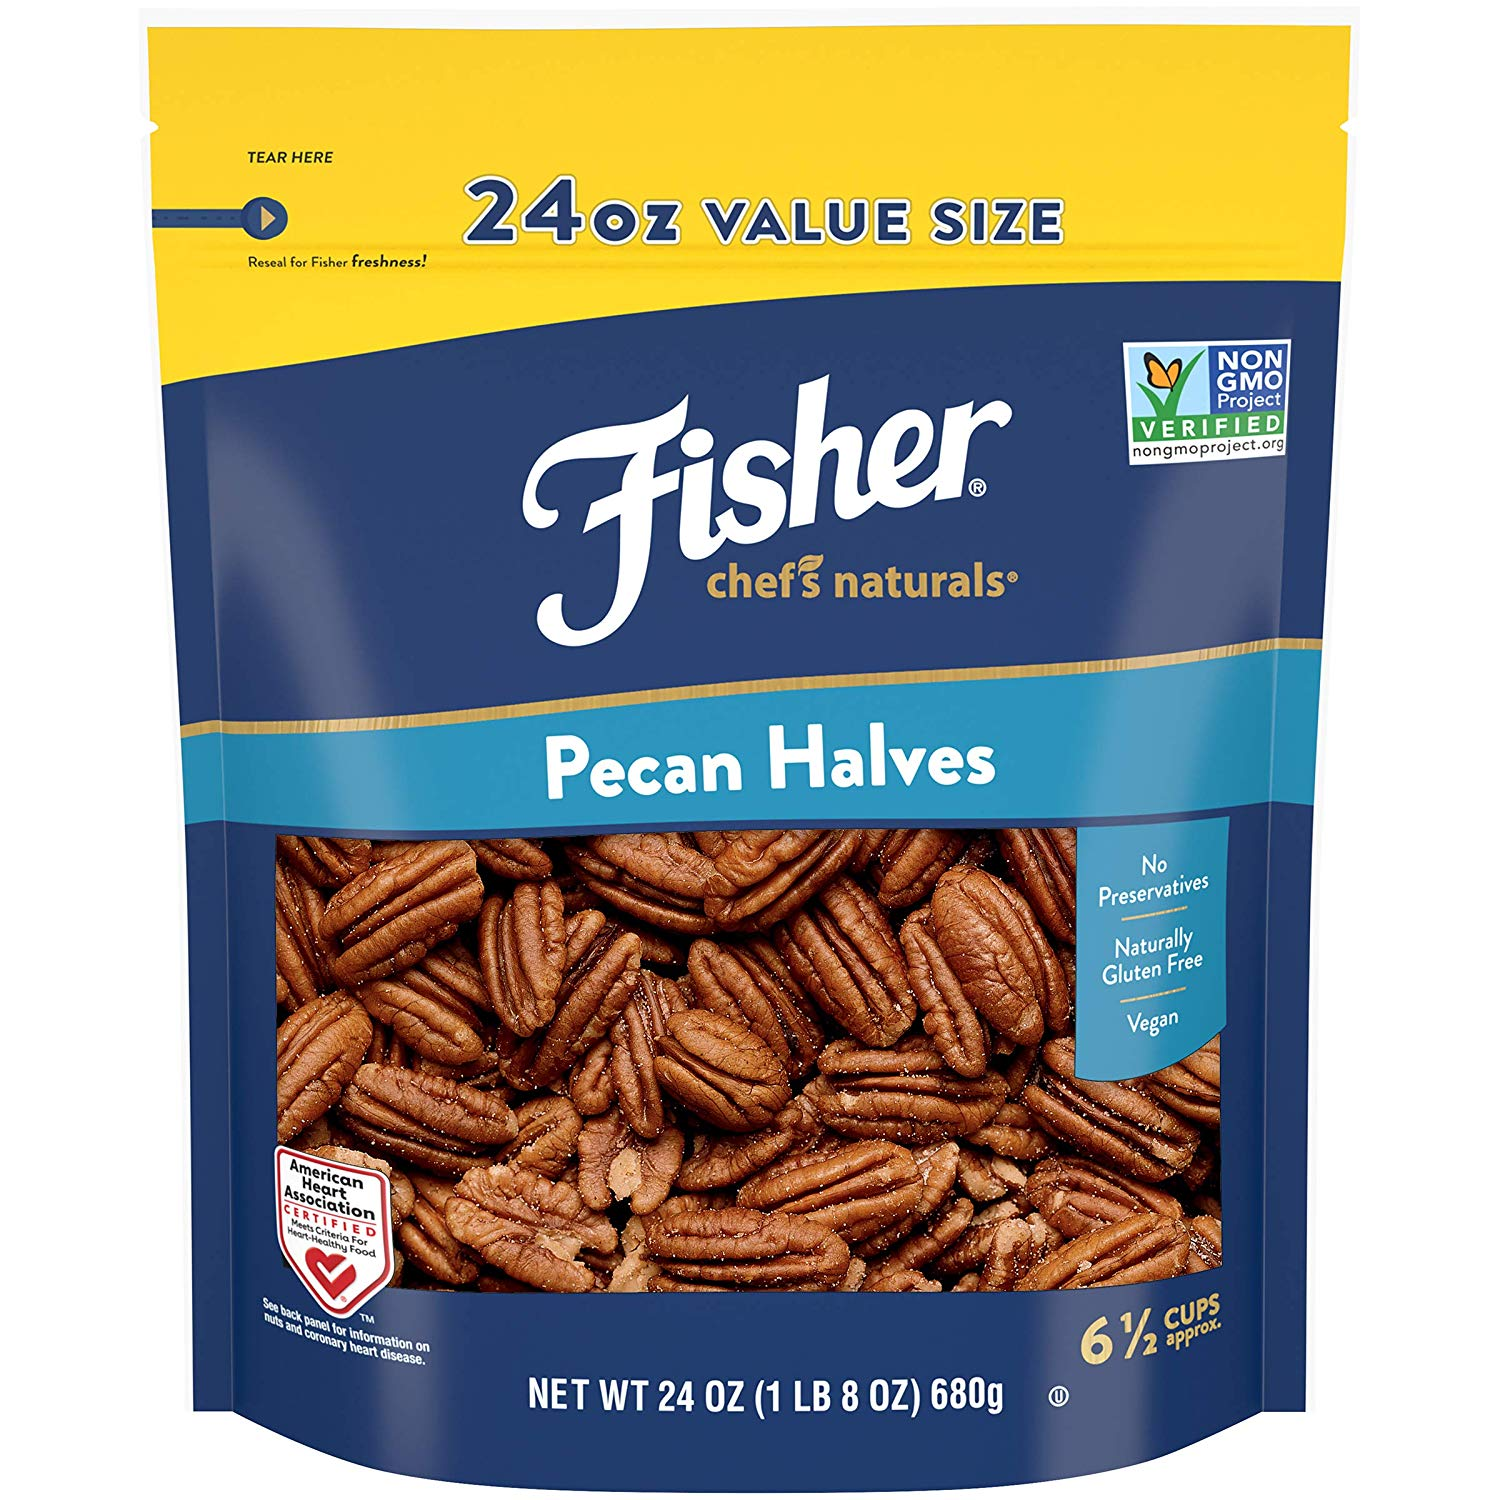 fisher pecan halves - low carb pecans - best low carb snacks